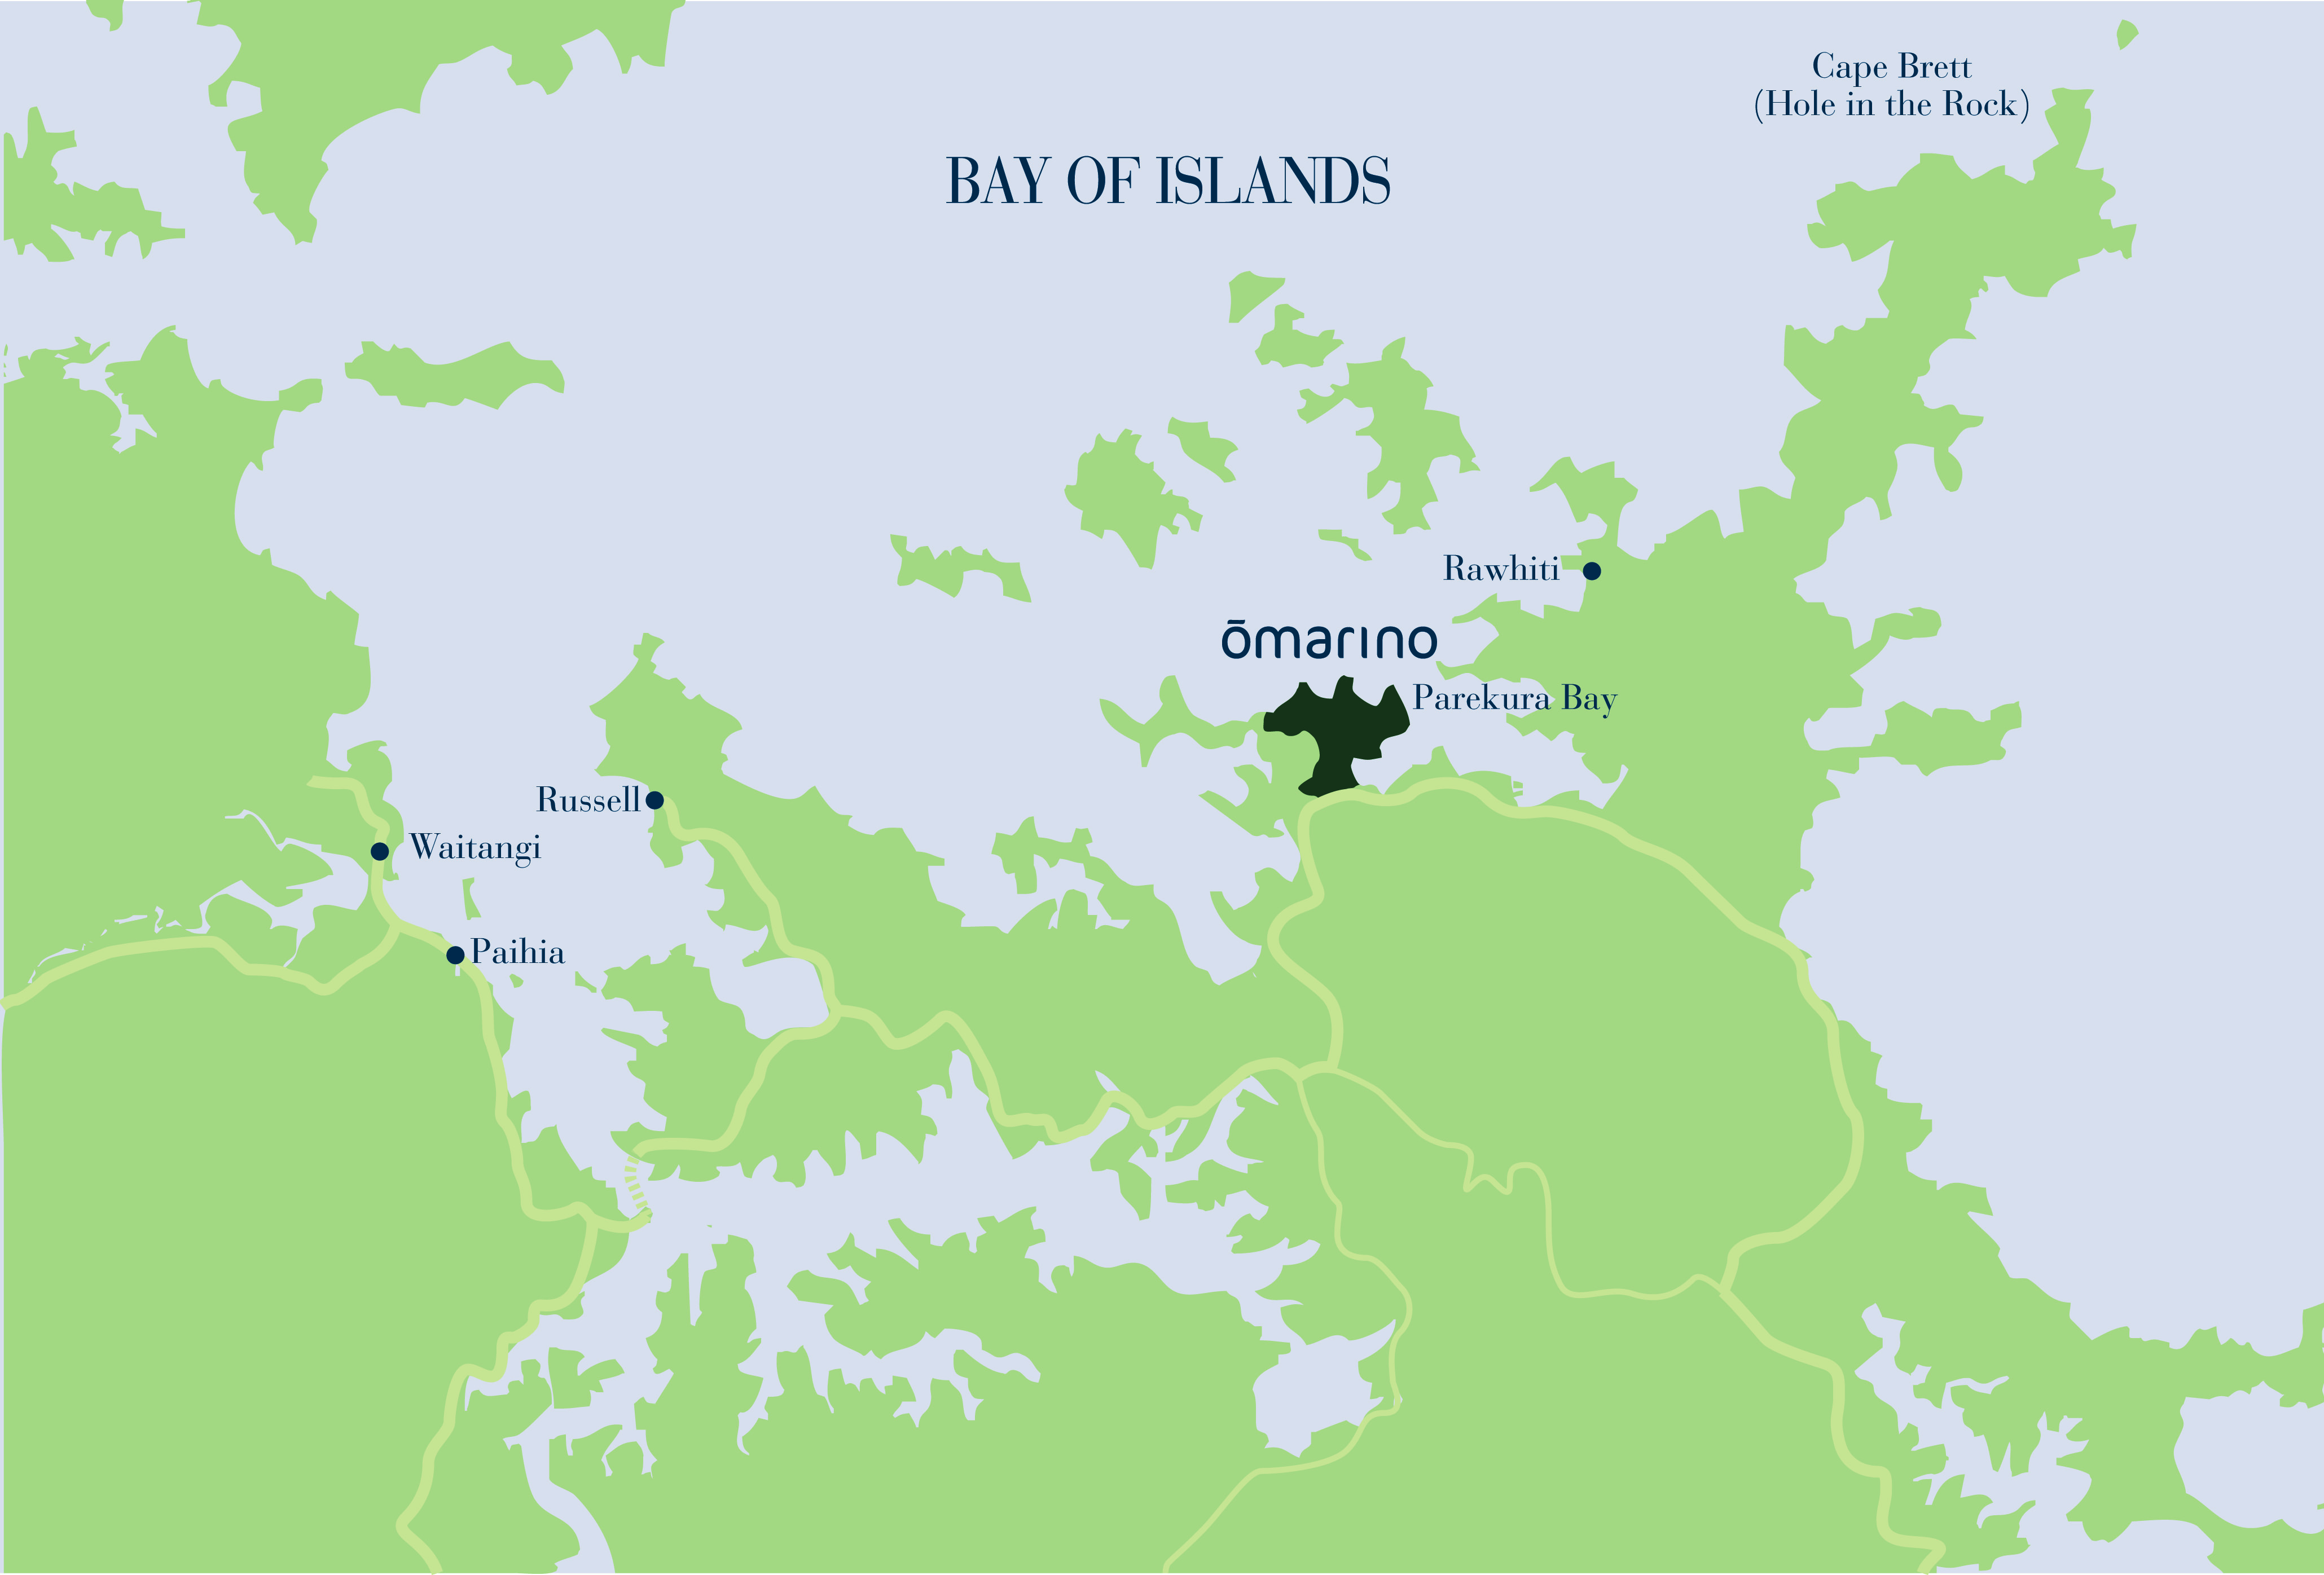 Bay of Islands | PAREANUI BAY Map Bay Of Islands on map of rhode island, map of guatemala, map of philippines, map of new brunswick, map of la ceiba, map of queensland, map of cancun, map of bali, map of st. martin, map of casco bay, map of put in bay ohio attractions, map of sandy bay, map of rajasthan, map of home, map of bay lake, map of sao tome and principe, map of san francisco bay area, map of utila island, map of st. john, map of tobago,